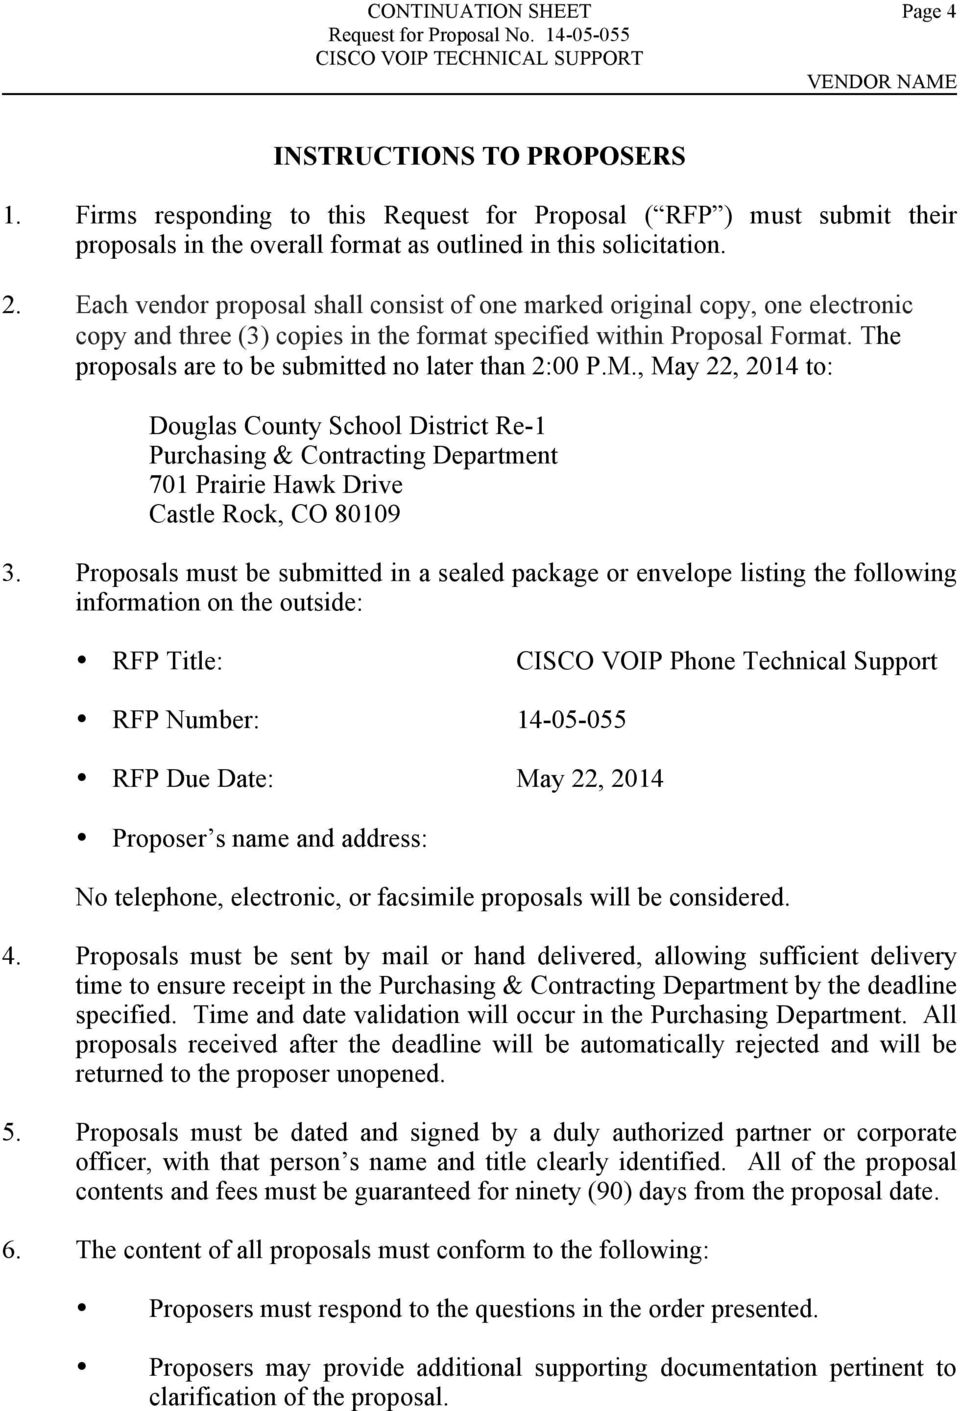 The proposals are to be submitted no later than 2:00 P.M., May 22, 2014 to: Douglas County School District Re-1 Purchasing & Contracting Department 701 Prairie Hawk Drive Castle Rock, CO 80109 3.